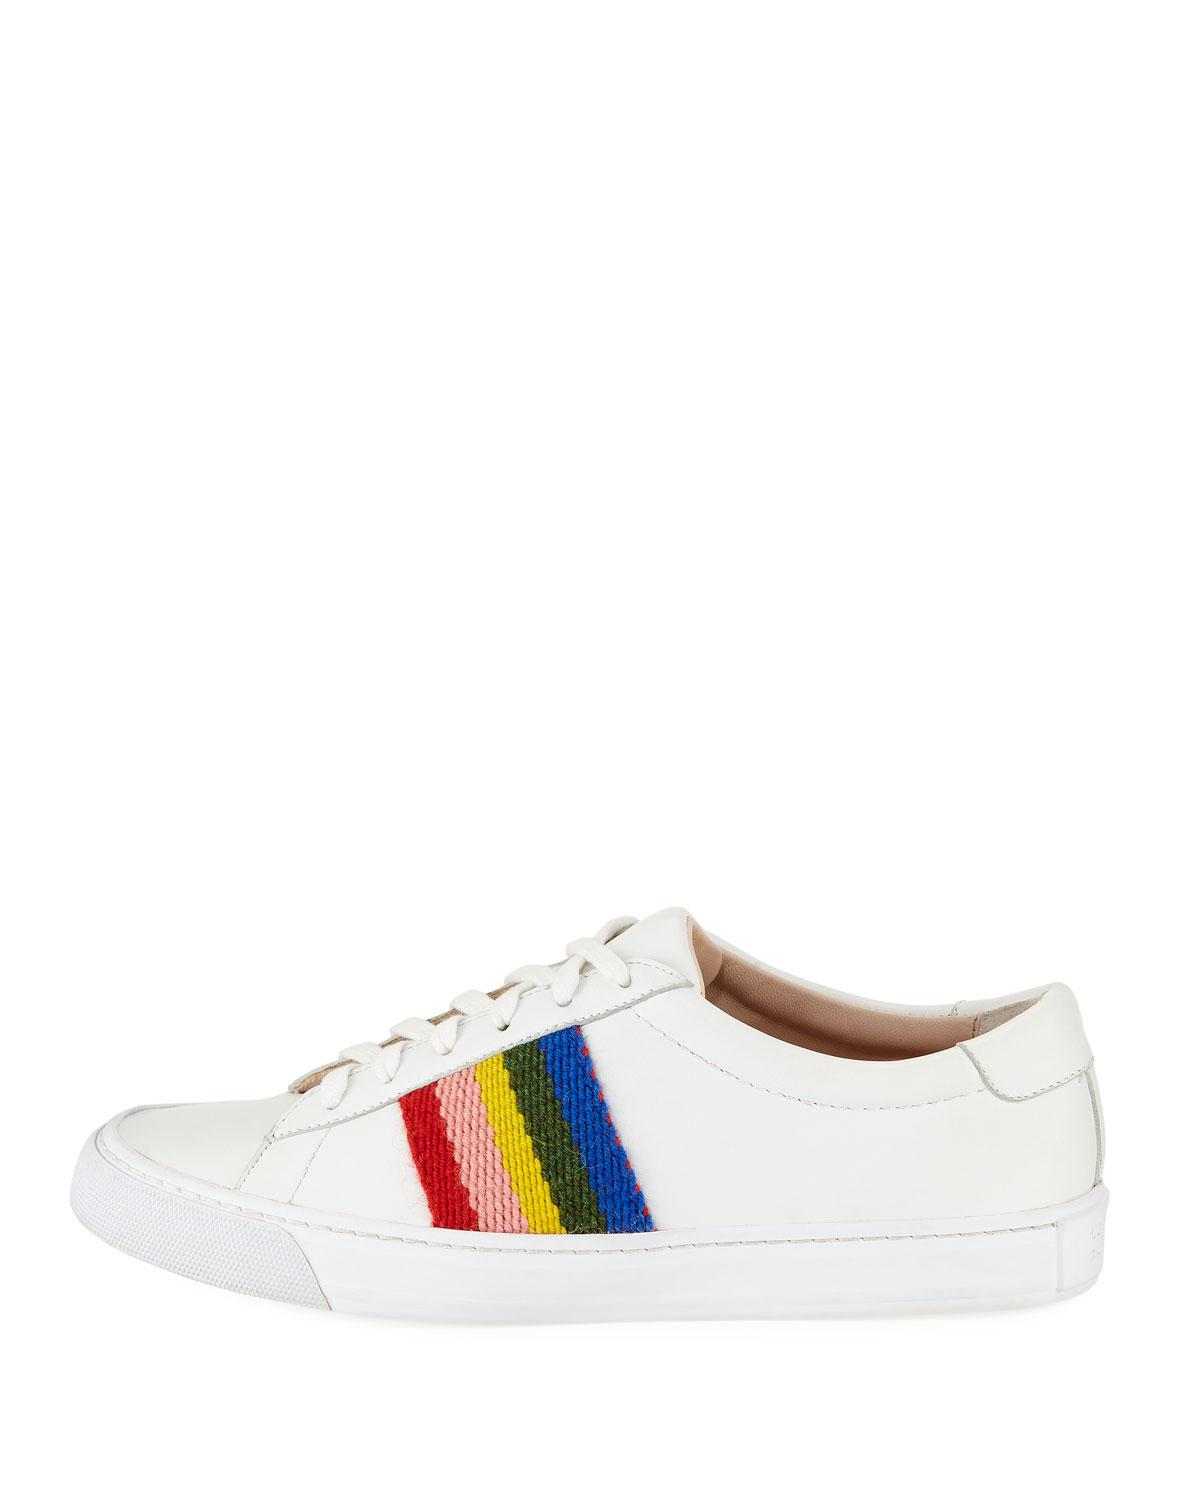 FOOTWEAR - Low-tops & sneakers Loeffler Randall